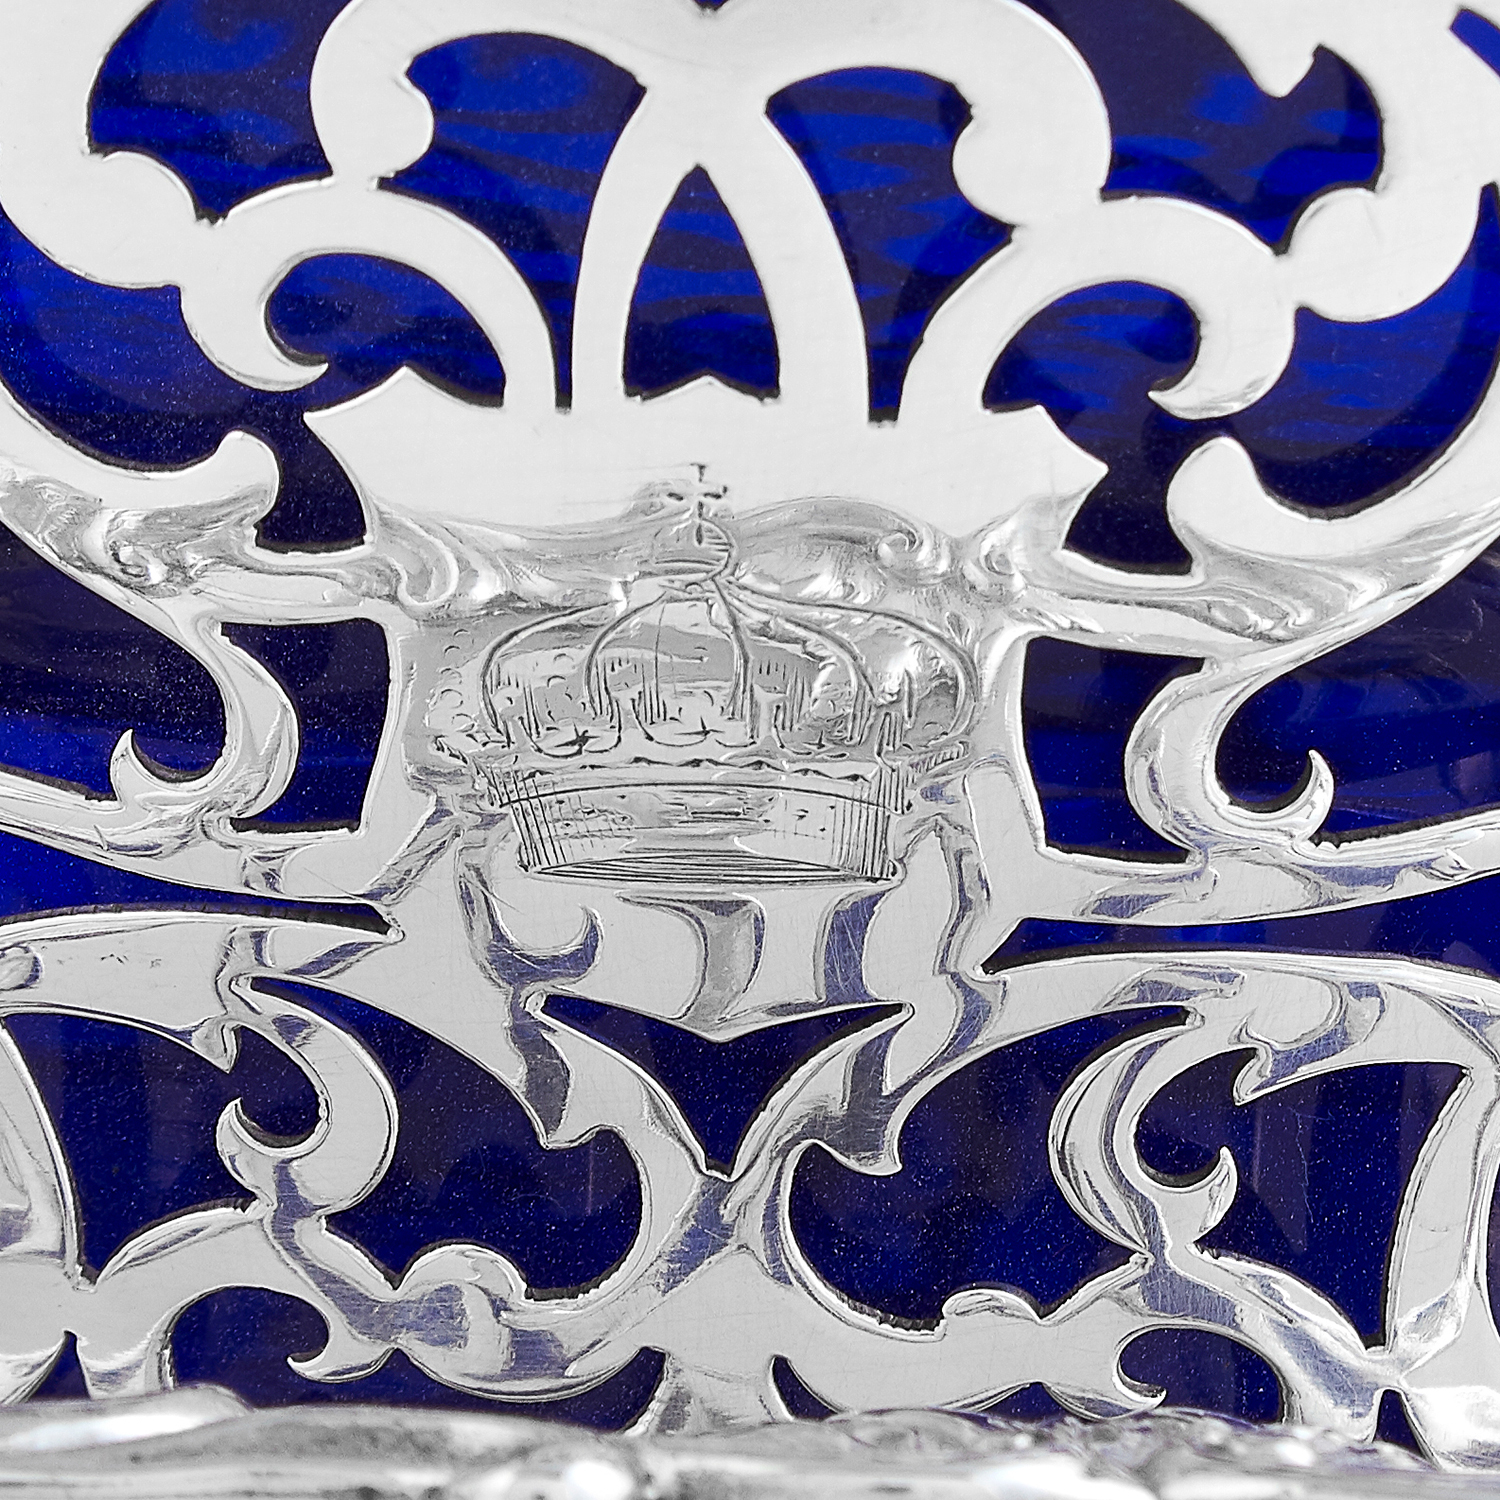 Los 67 - ANTIQUE VICTORIAN STERLING SILVER AND GLASS BUTTER DISH, JOHN FIGG LONODN 1840 the circular blue